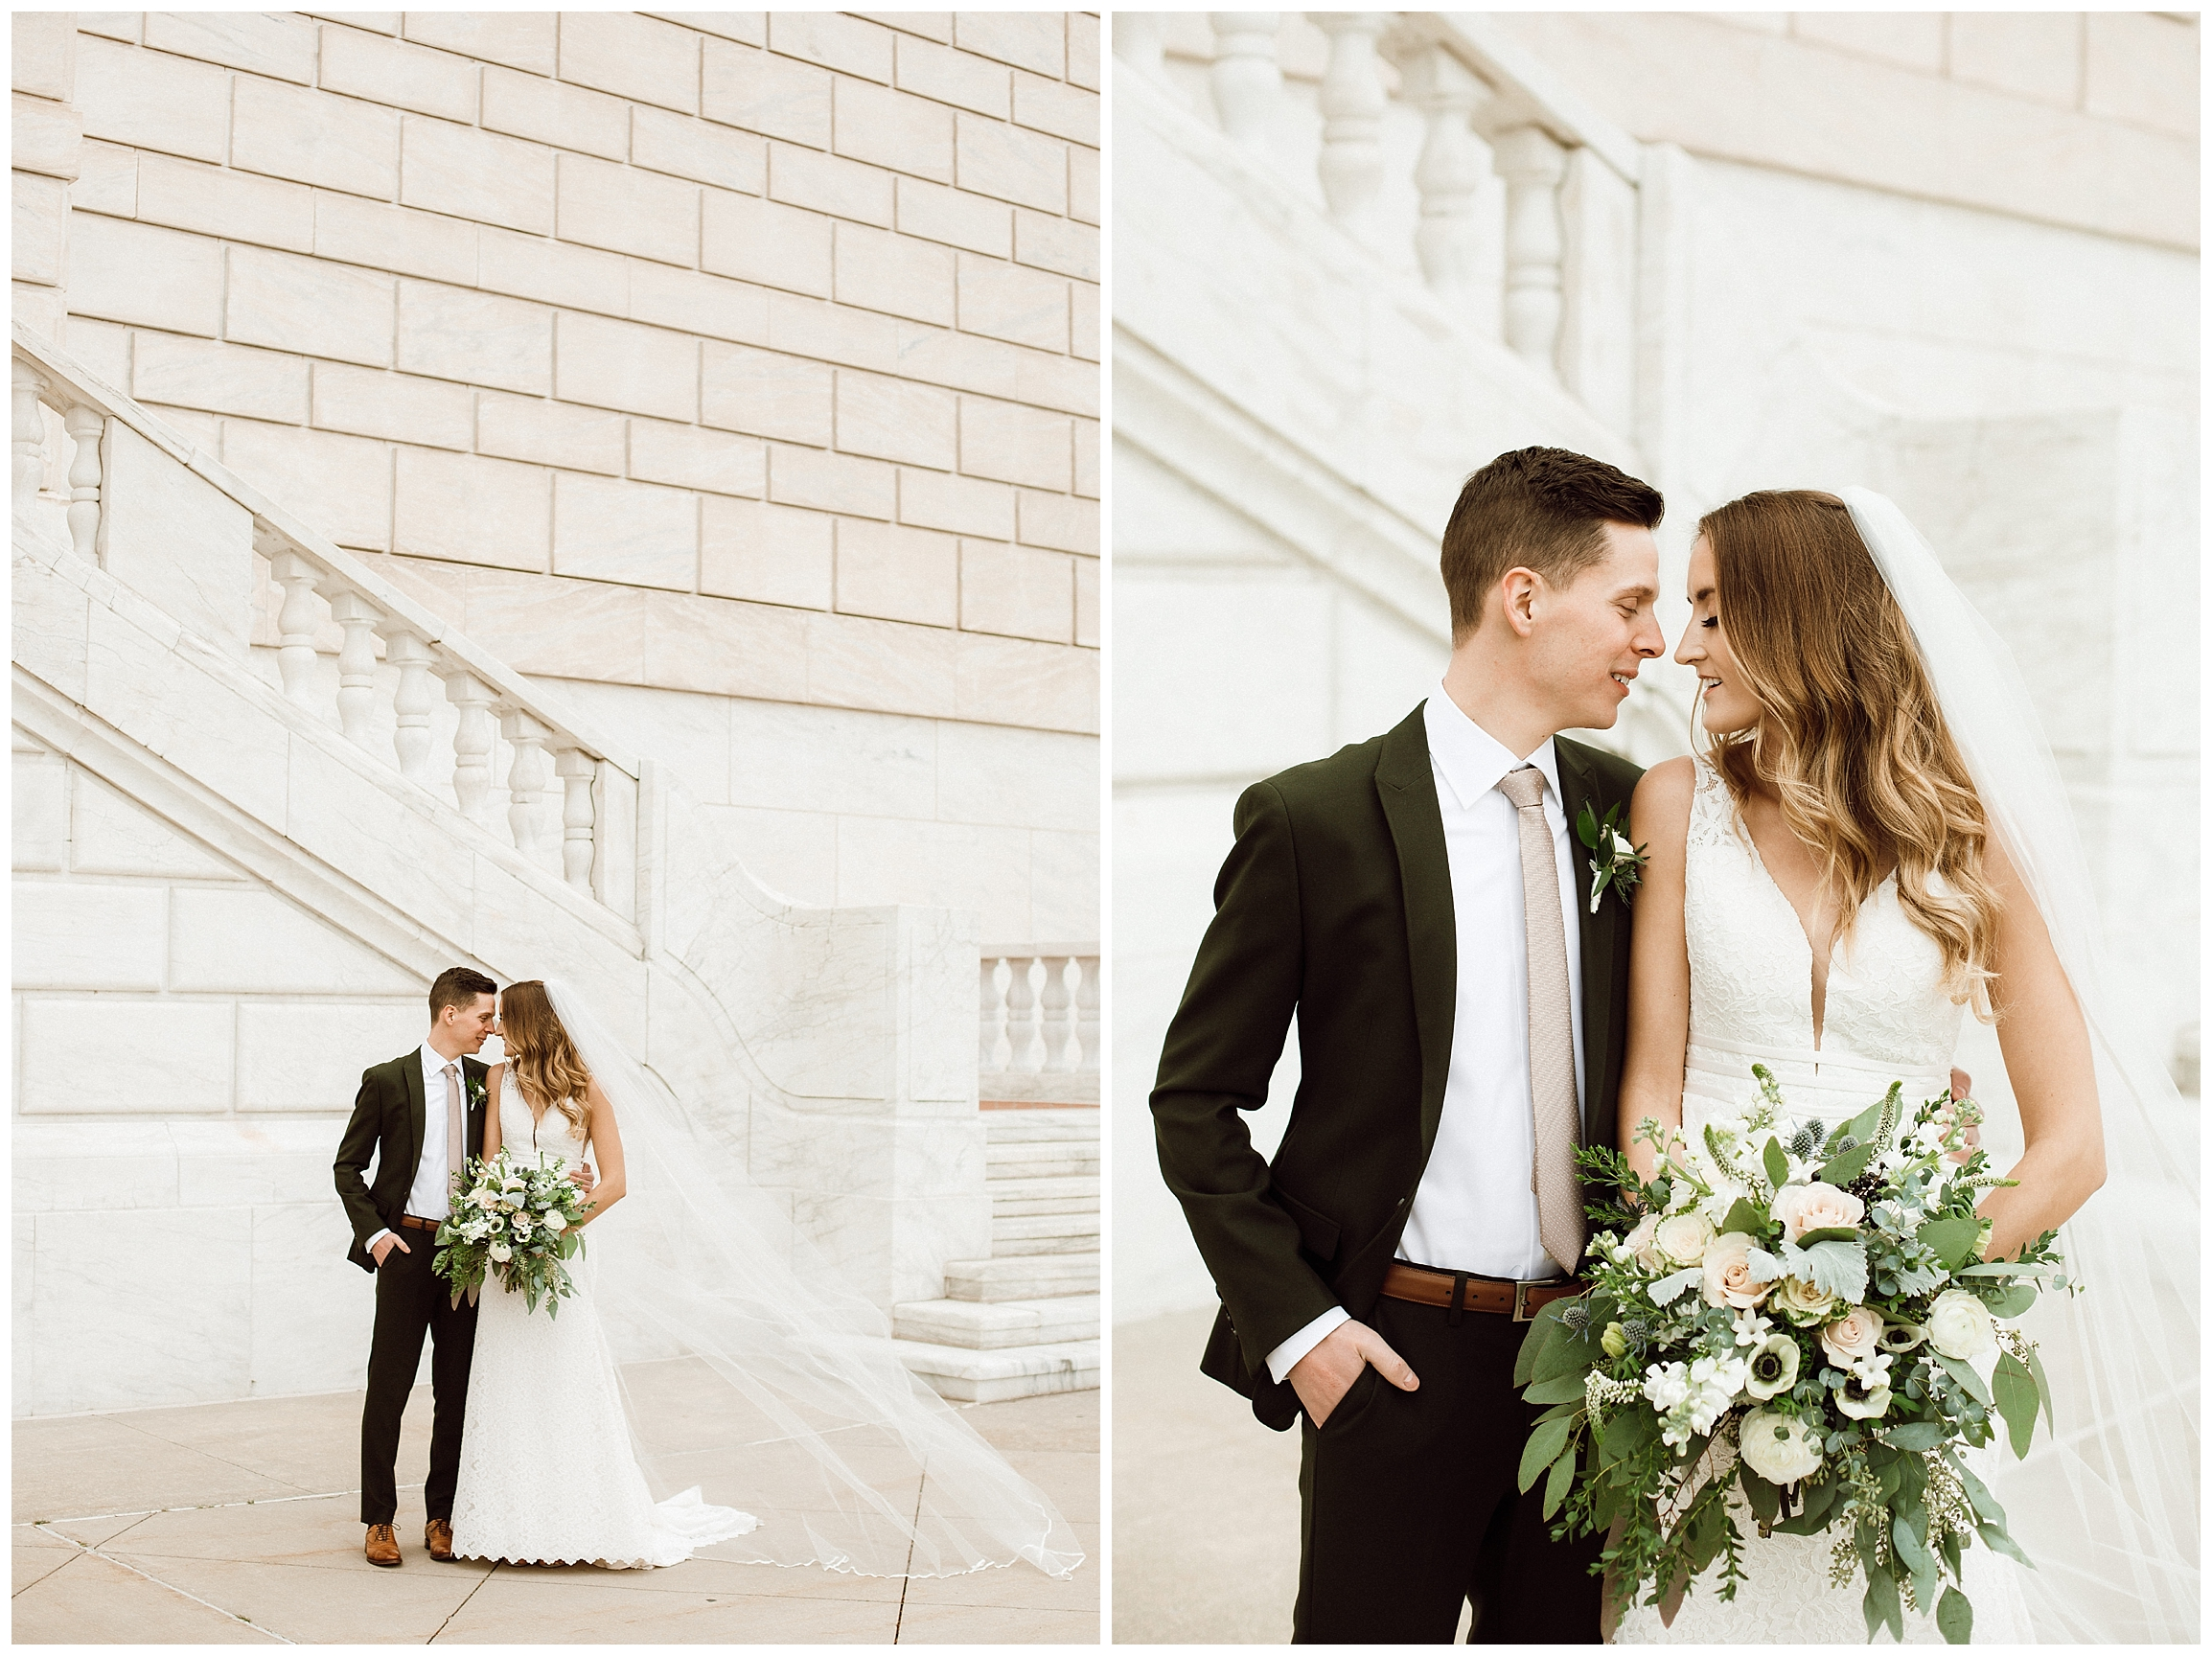 Katie_Vonasek_Photography_Ford_Piquette_Plant_Wedding_Detroit26.JPG